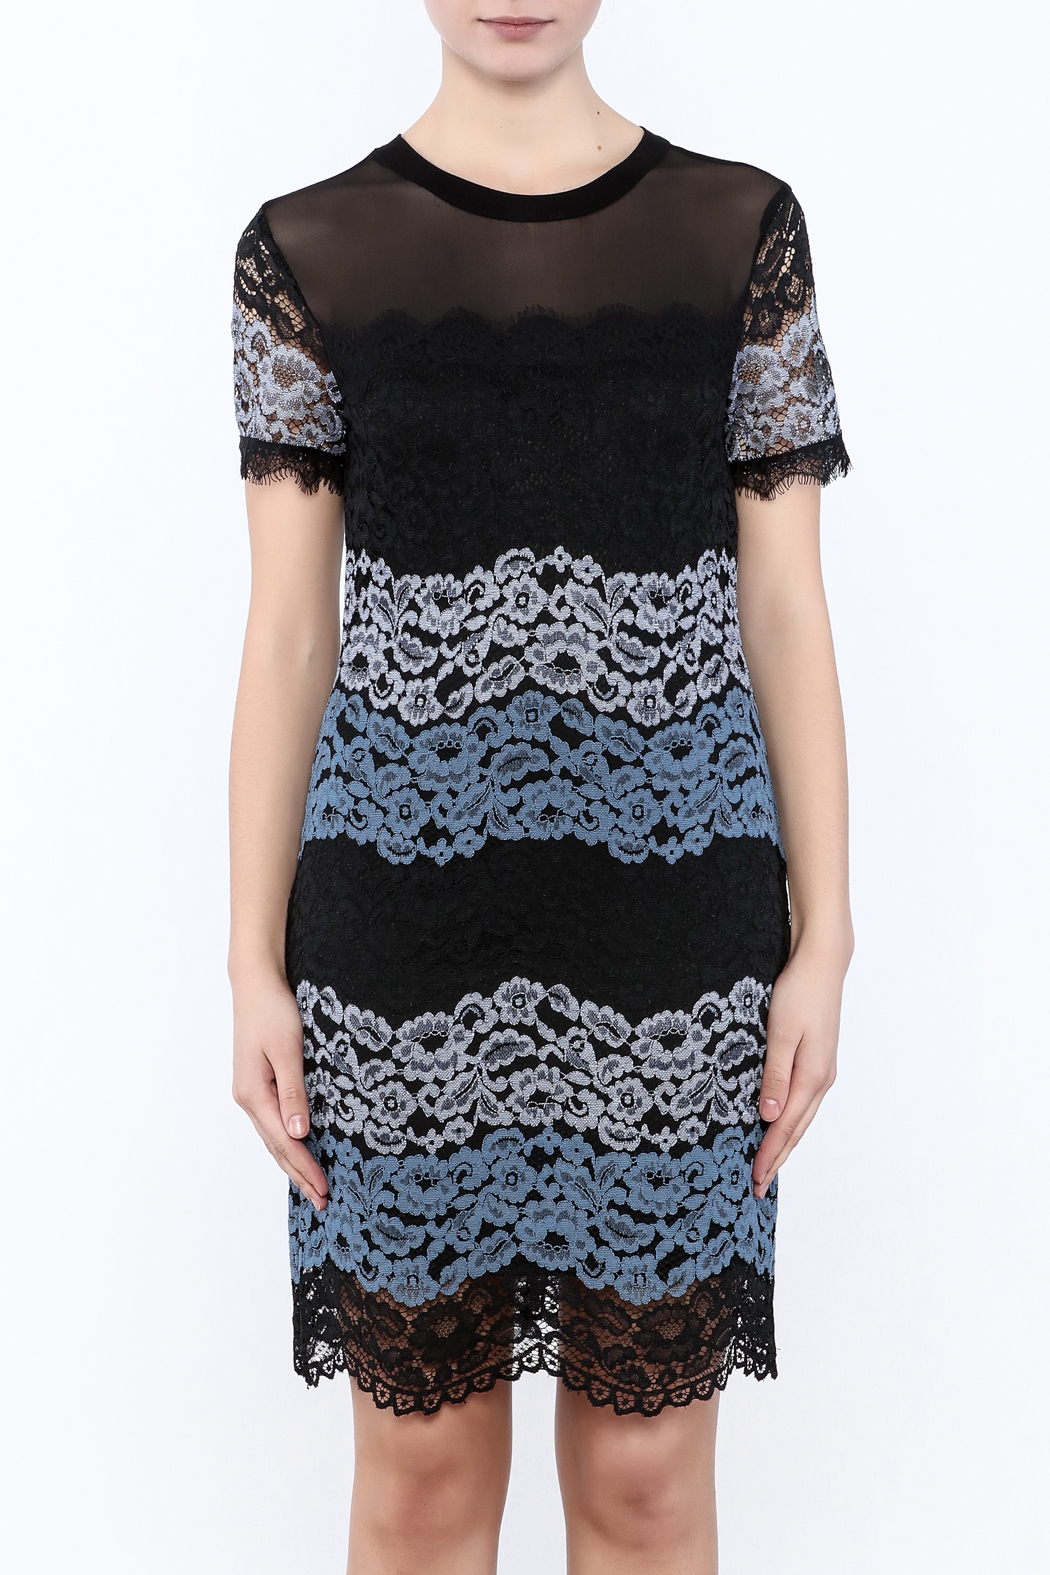 Kut from the Kloth Lace Color Block Dress - Side Cropped Image